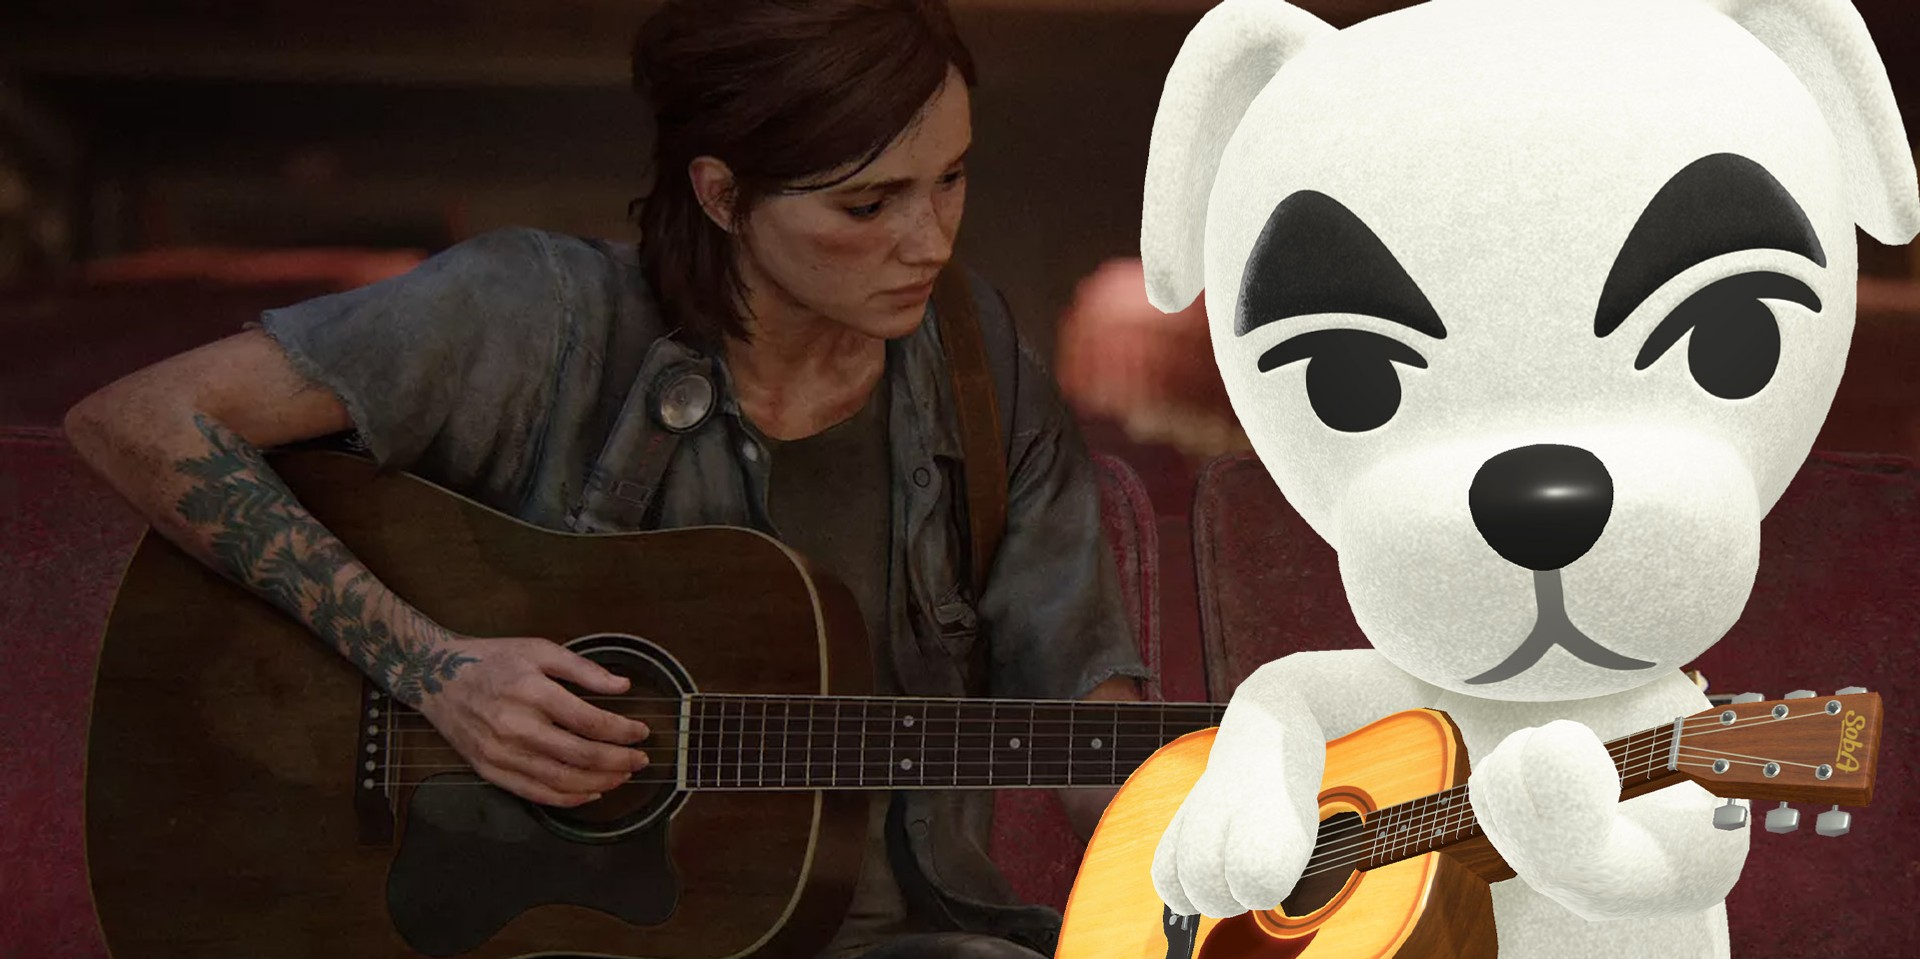 Music and rhythm video games you should be playing right now